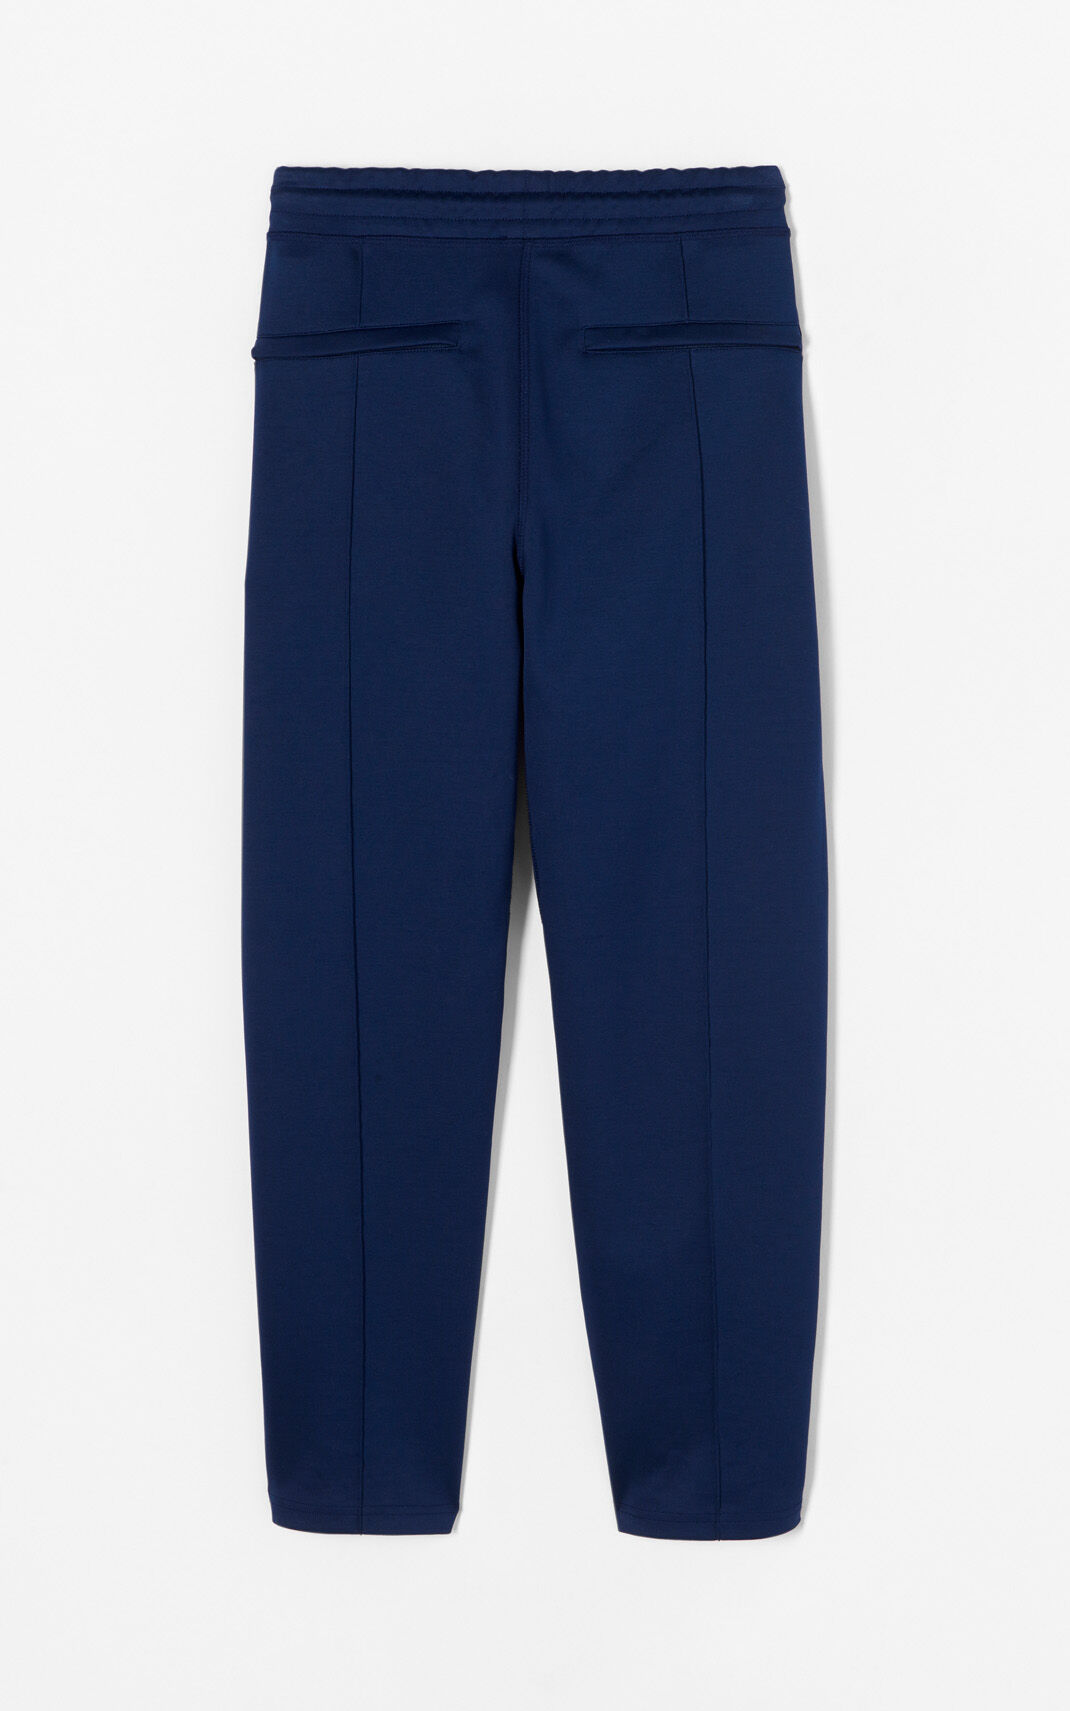 INK 'Hyper KENZO' joggers for women